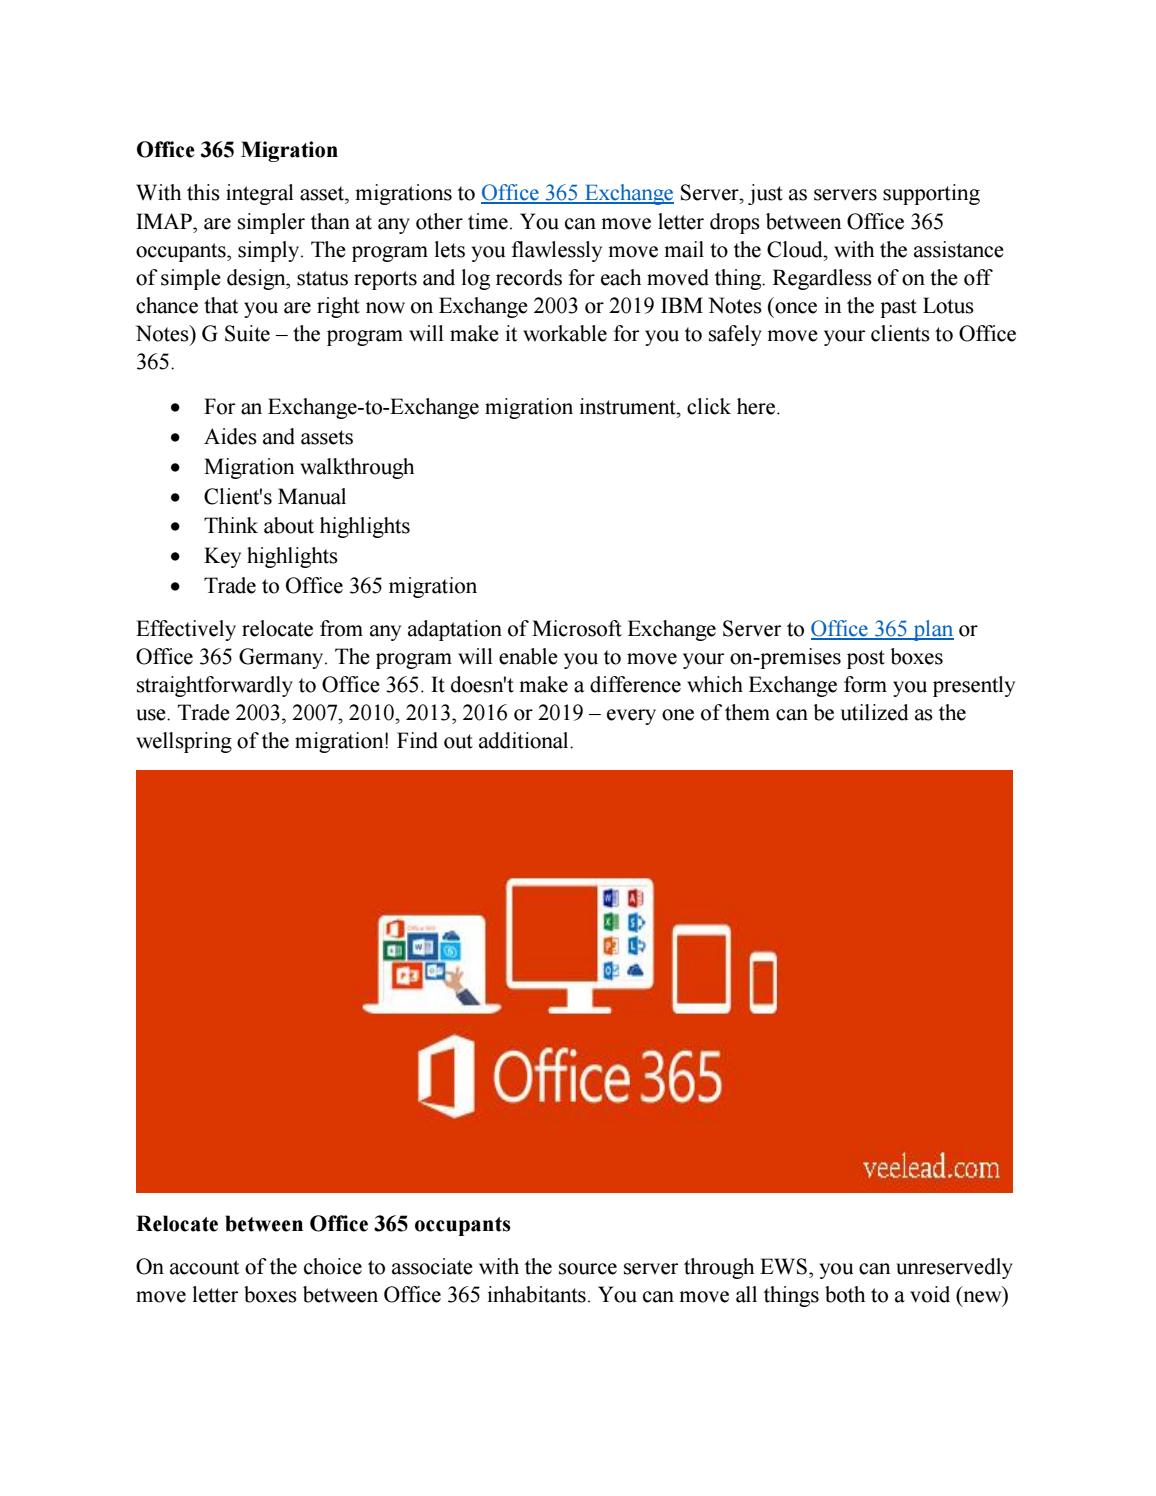 Office 365 Migration Tool by Veelead Solutions - issuu